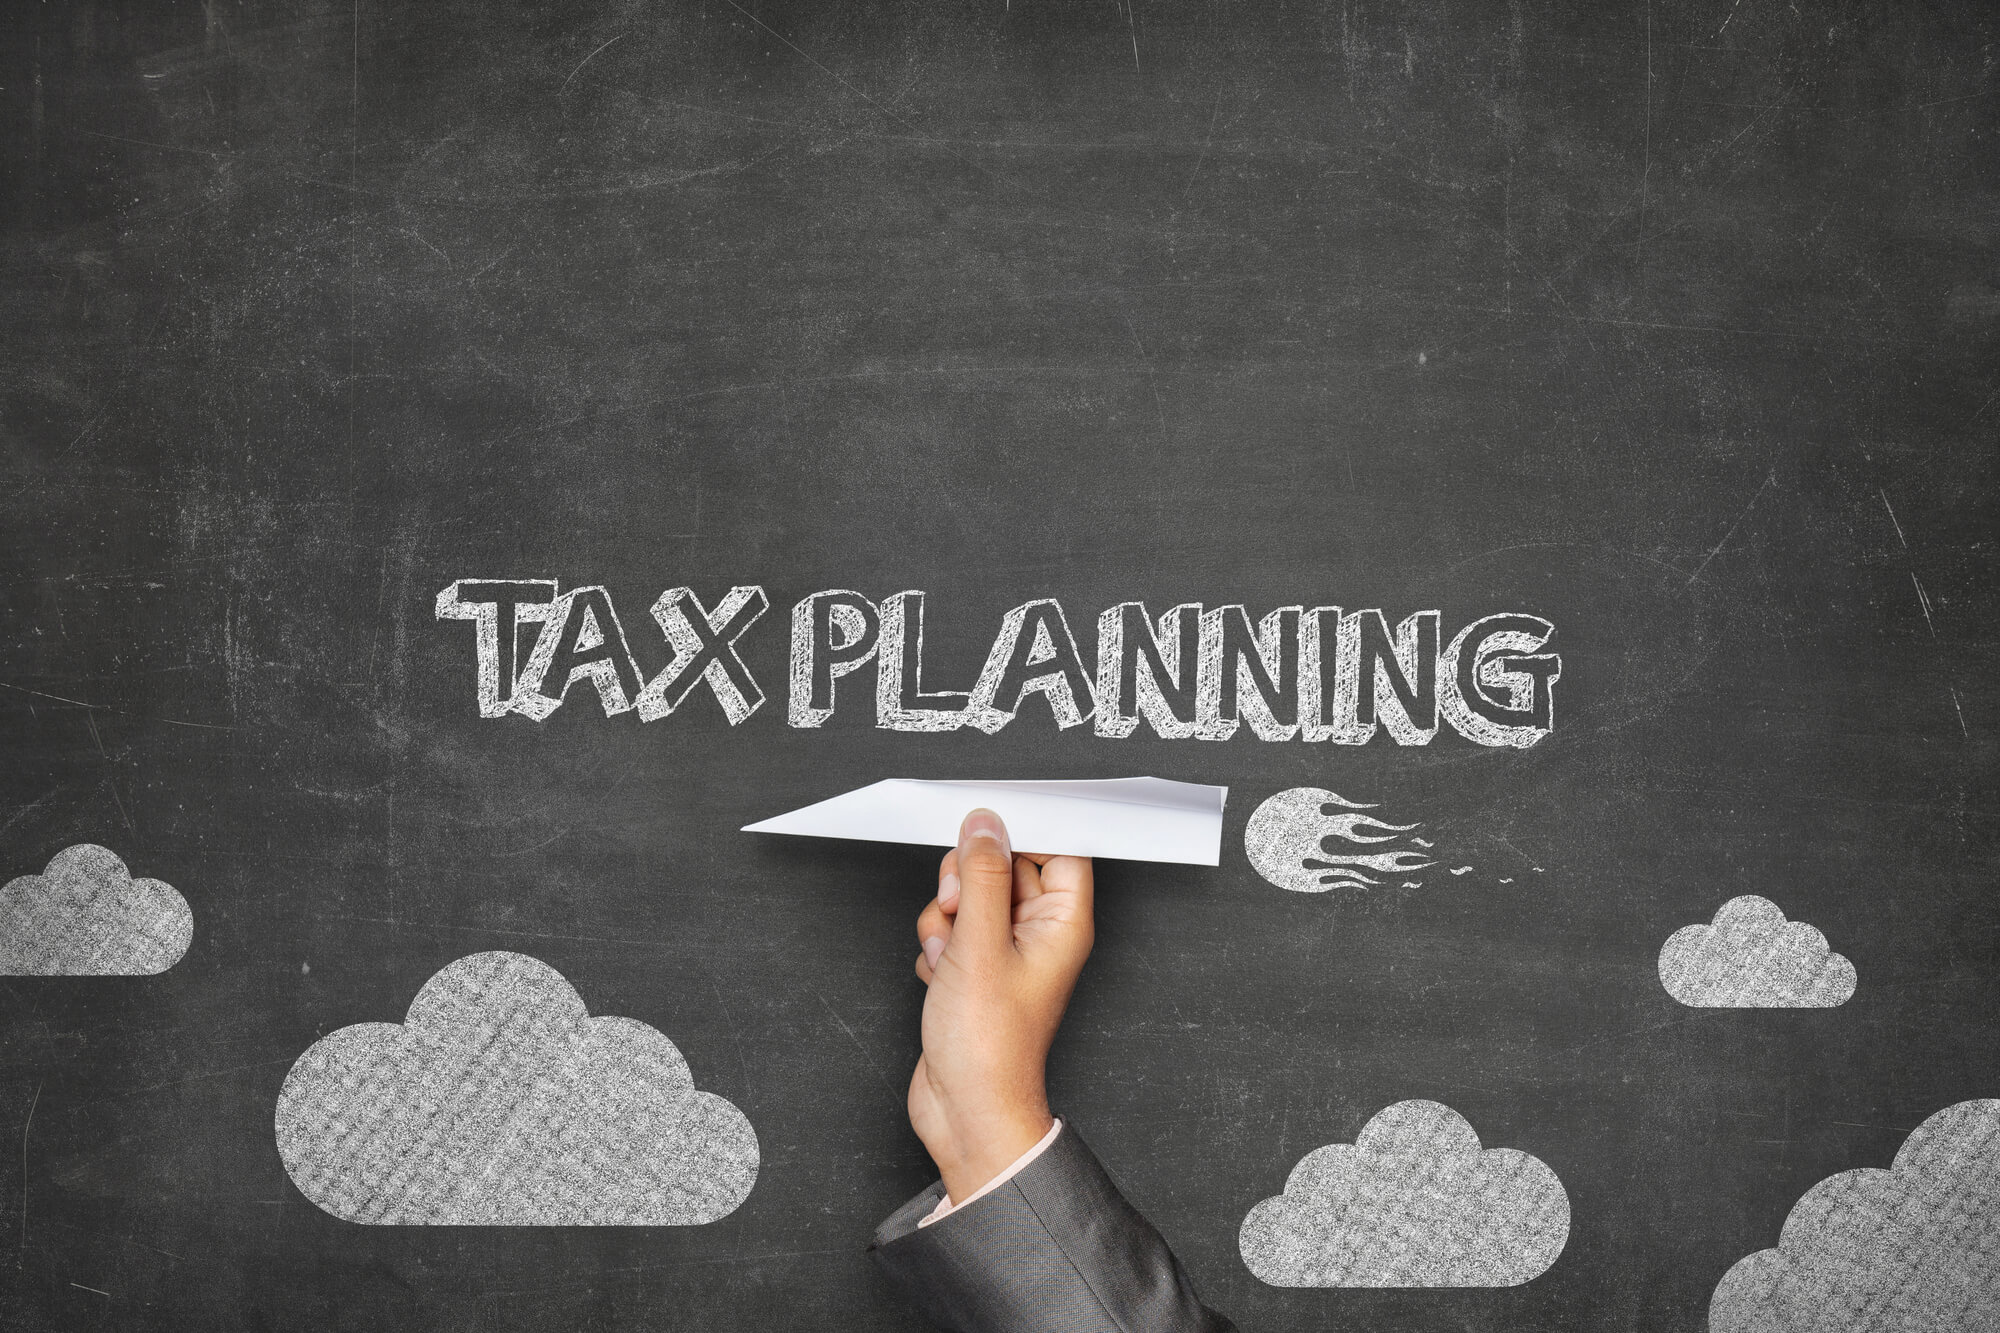 CPA in Pembroke Pines does tax planning on a chalkboard